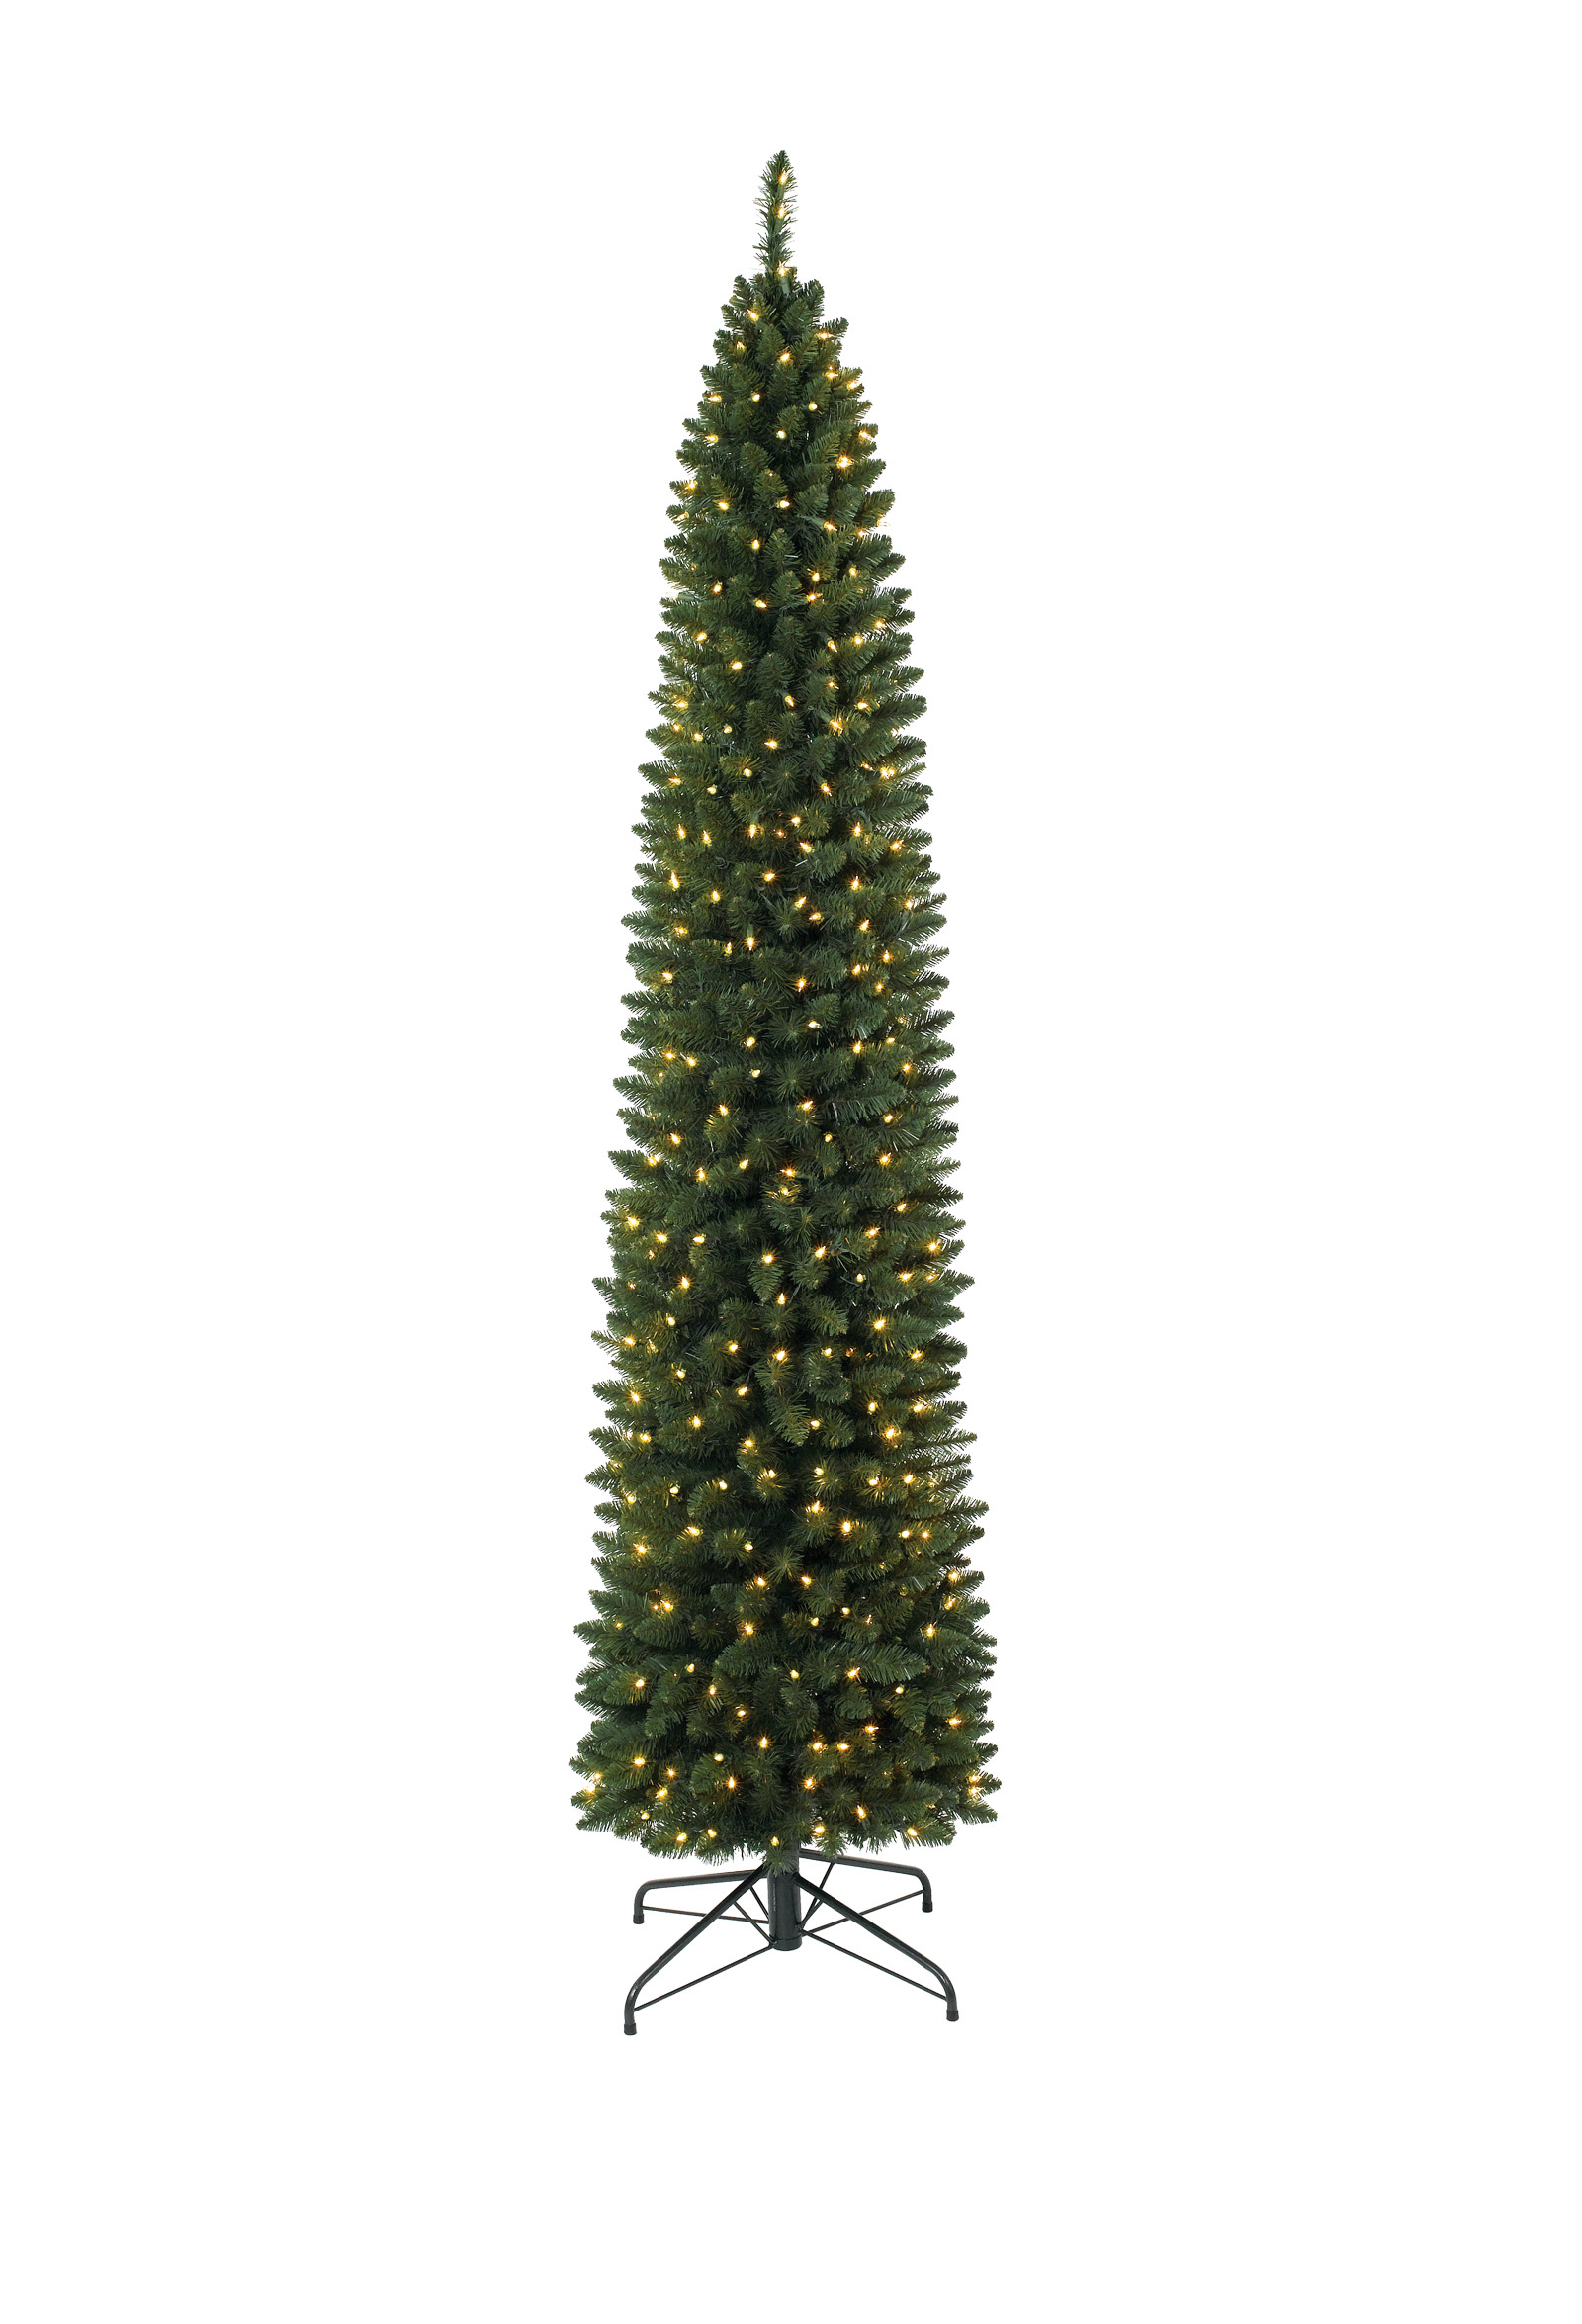 6 ft Ticonderoga Pencil Clear Lit Tree | Christmas Tree Market